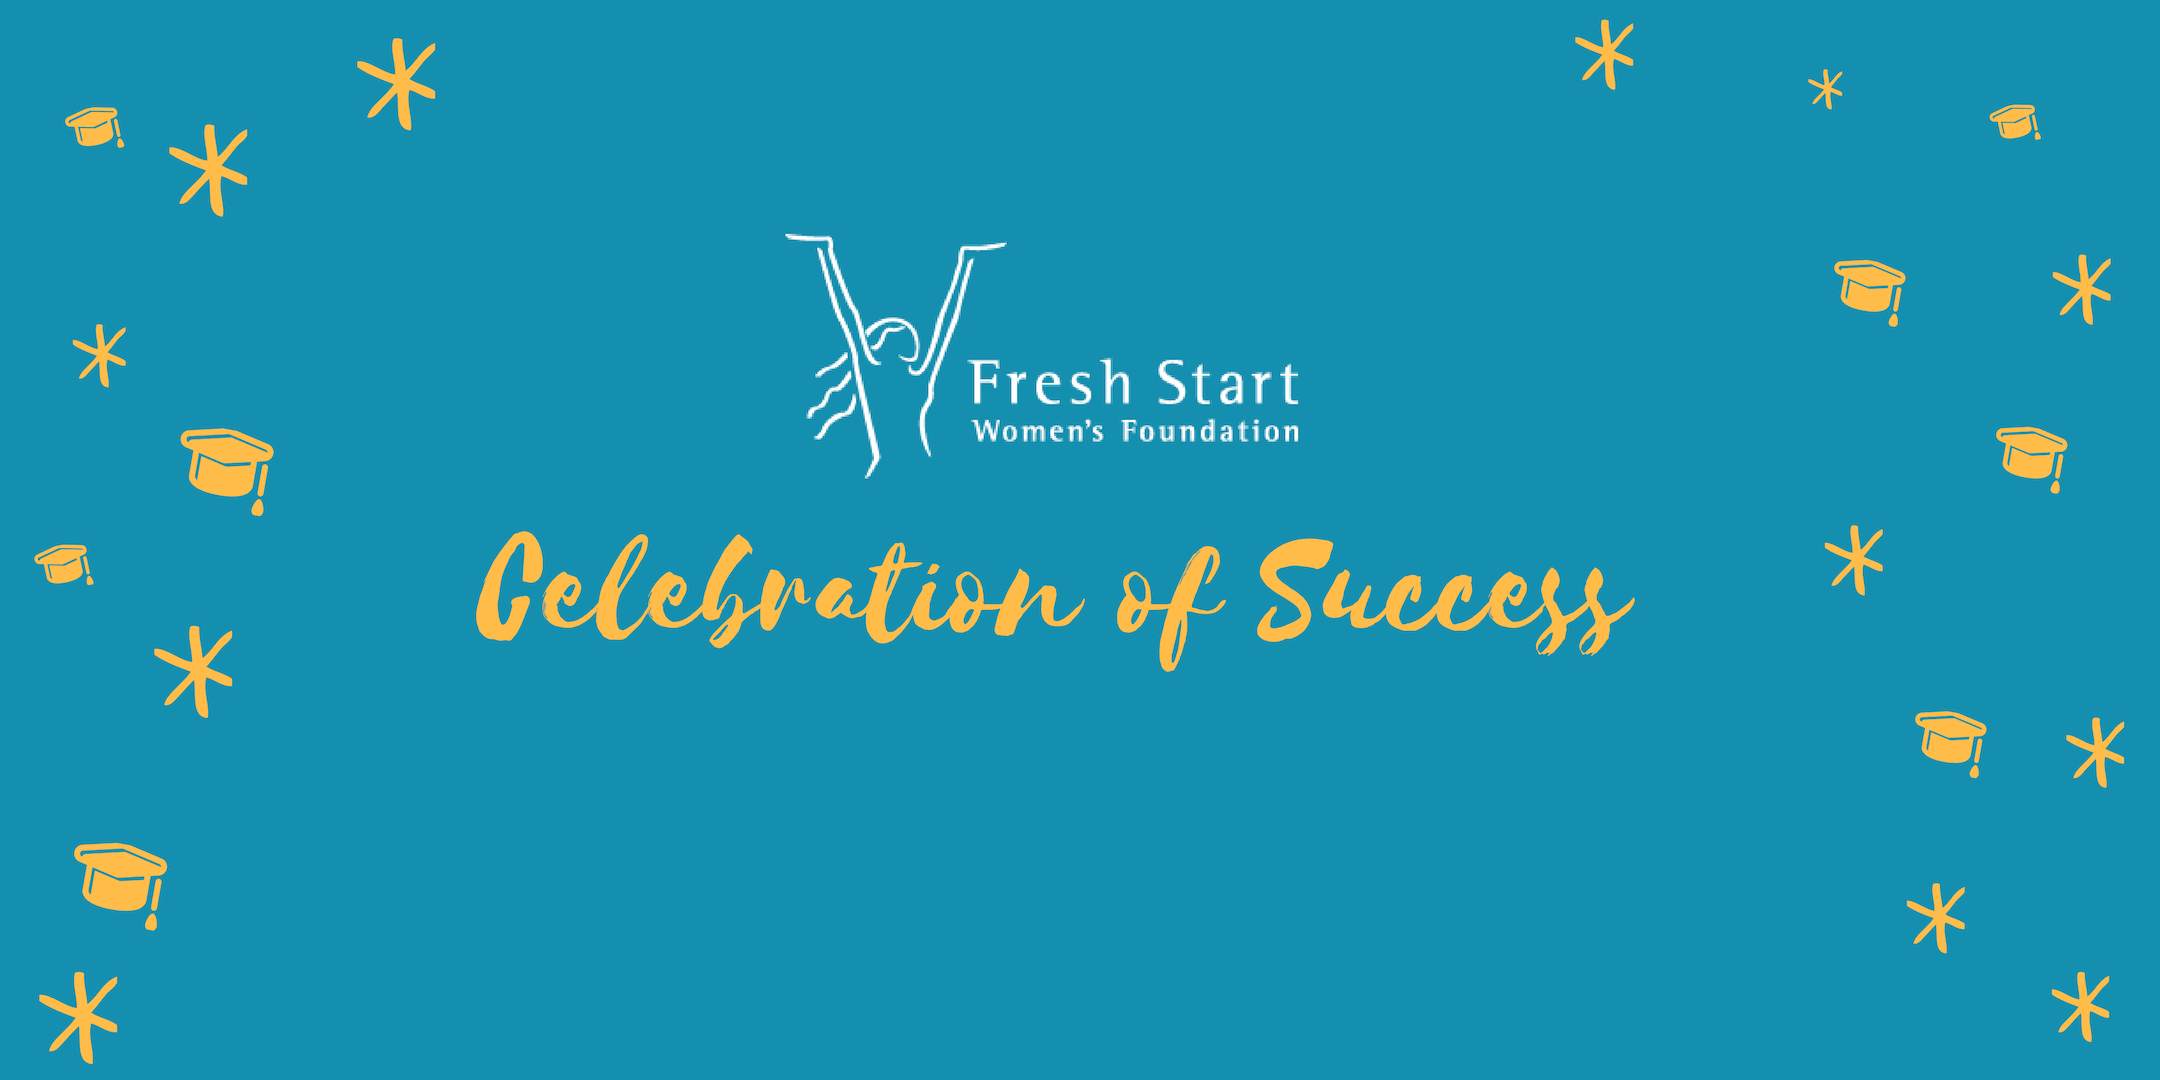 Fresh Start Women's Foundation Celebration of Success